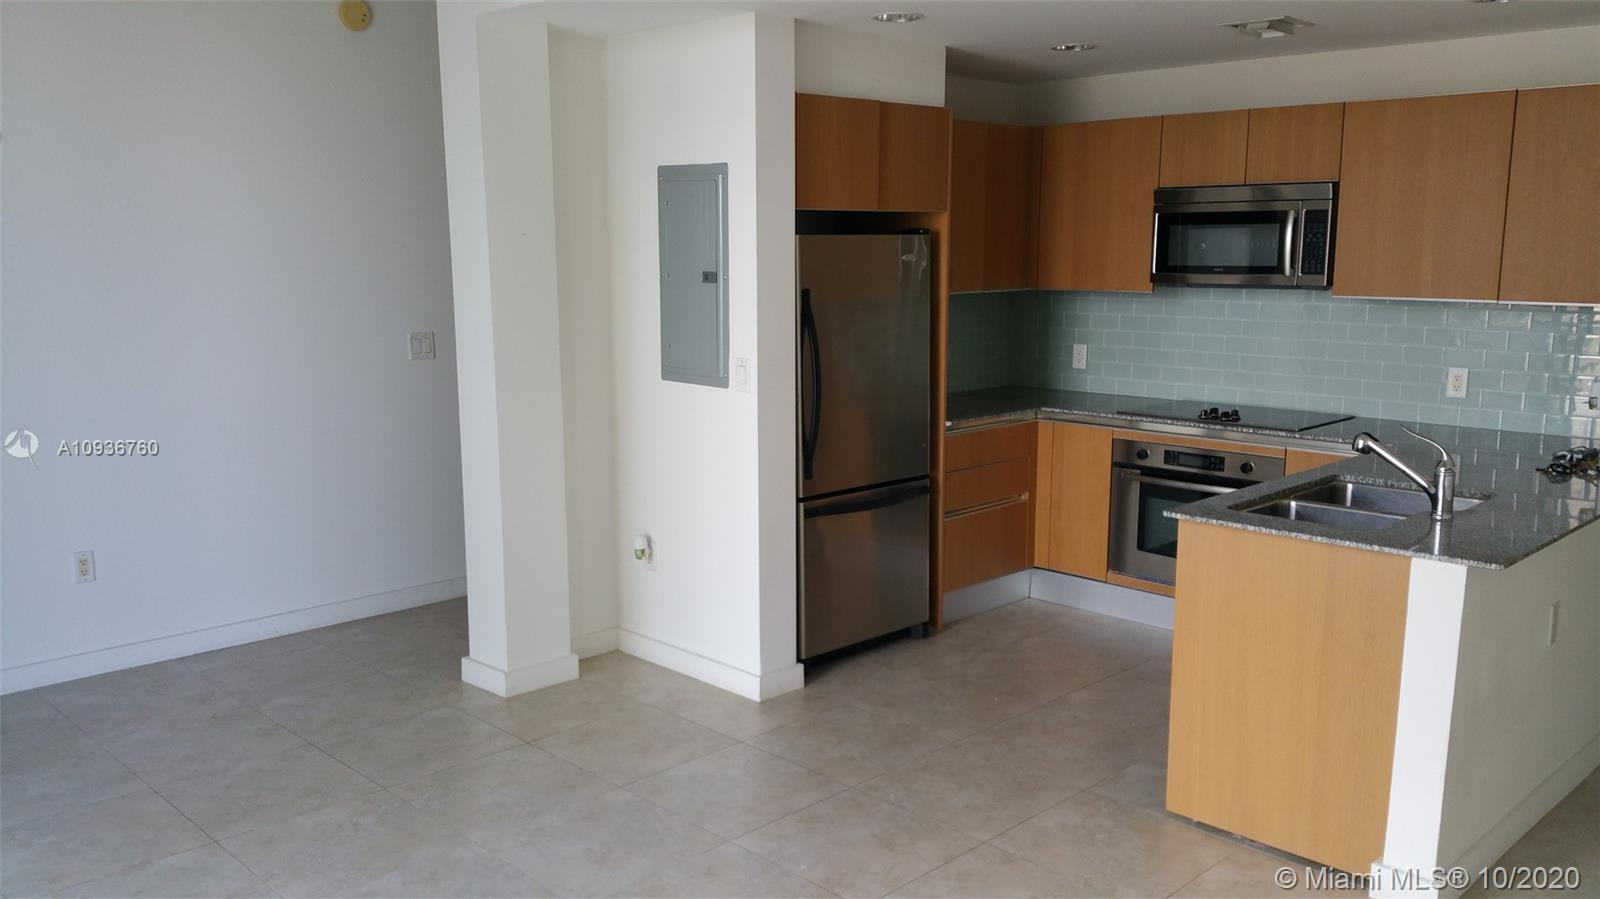 Nice Open Space LOFT unit with 1,125 Square feet in Brickell Area, open balcony view facing South Mi